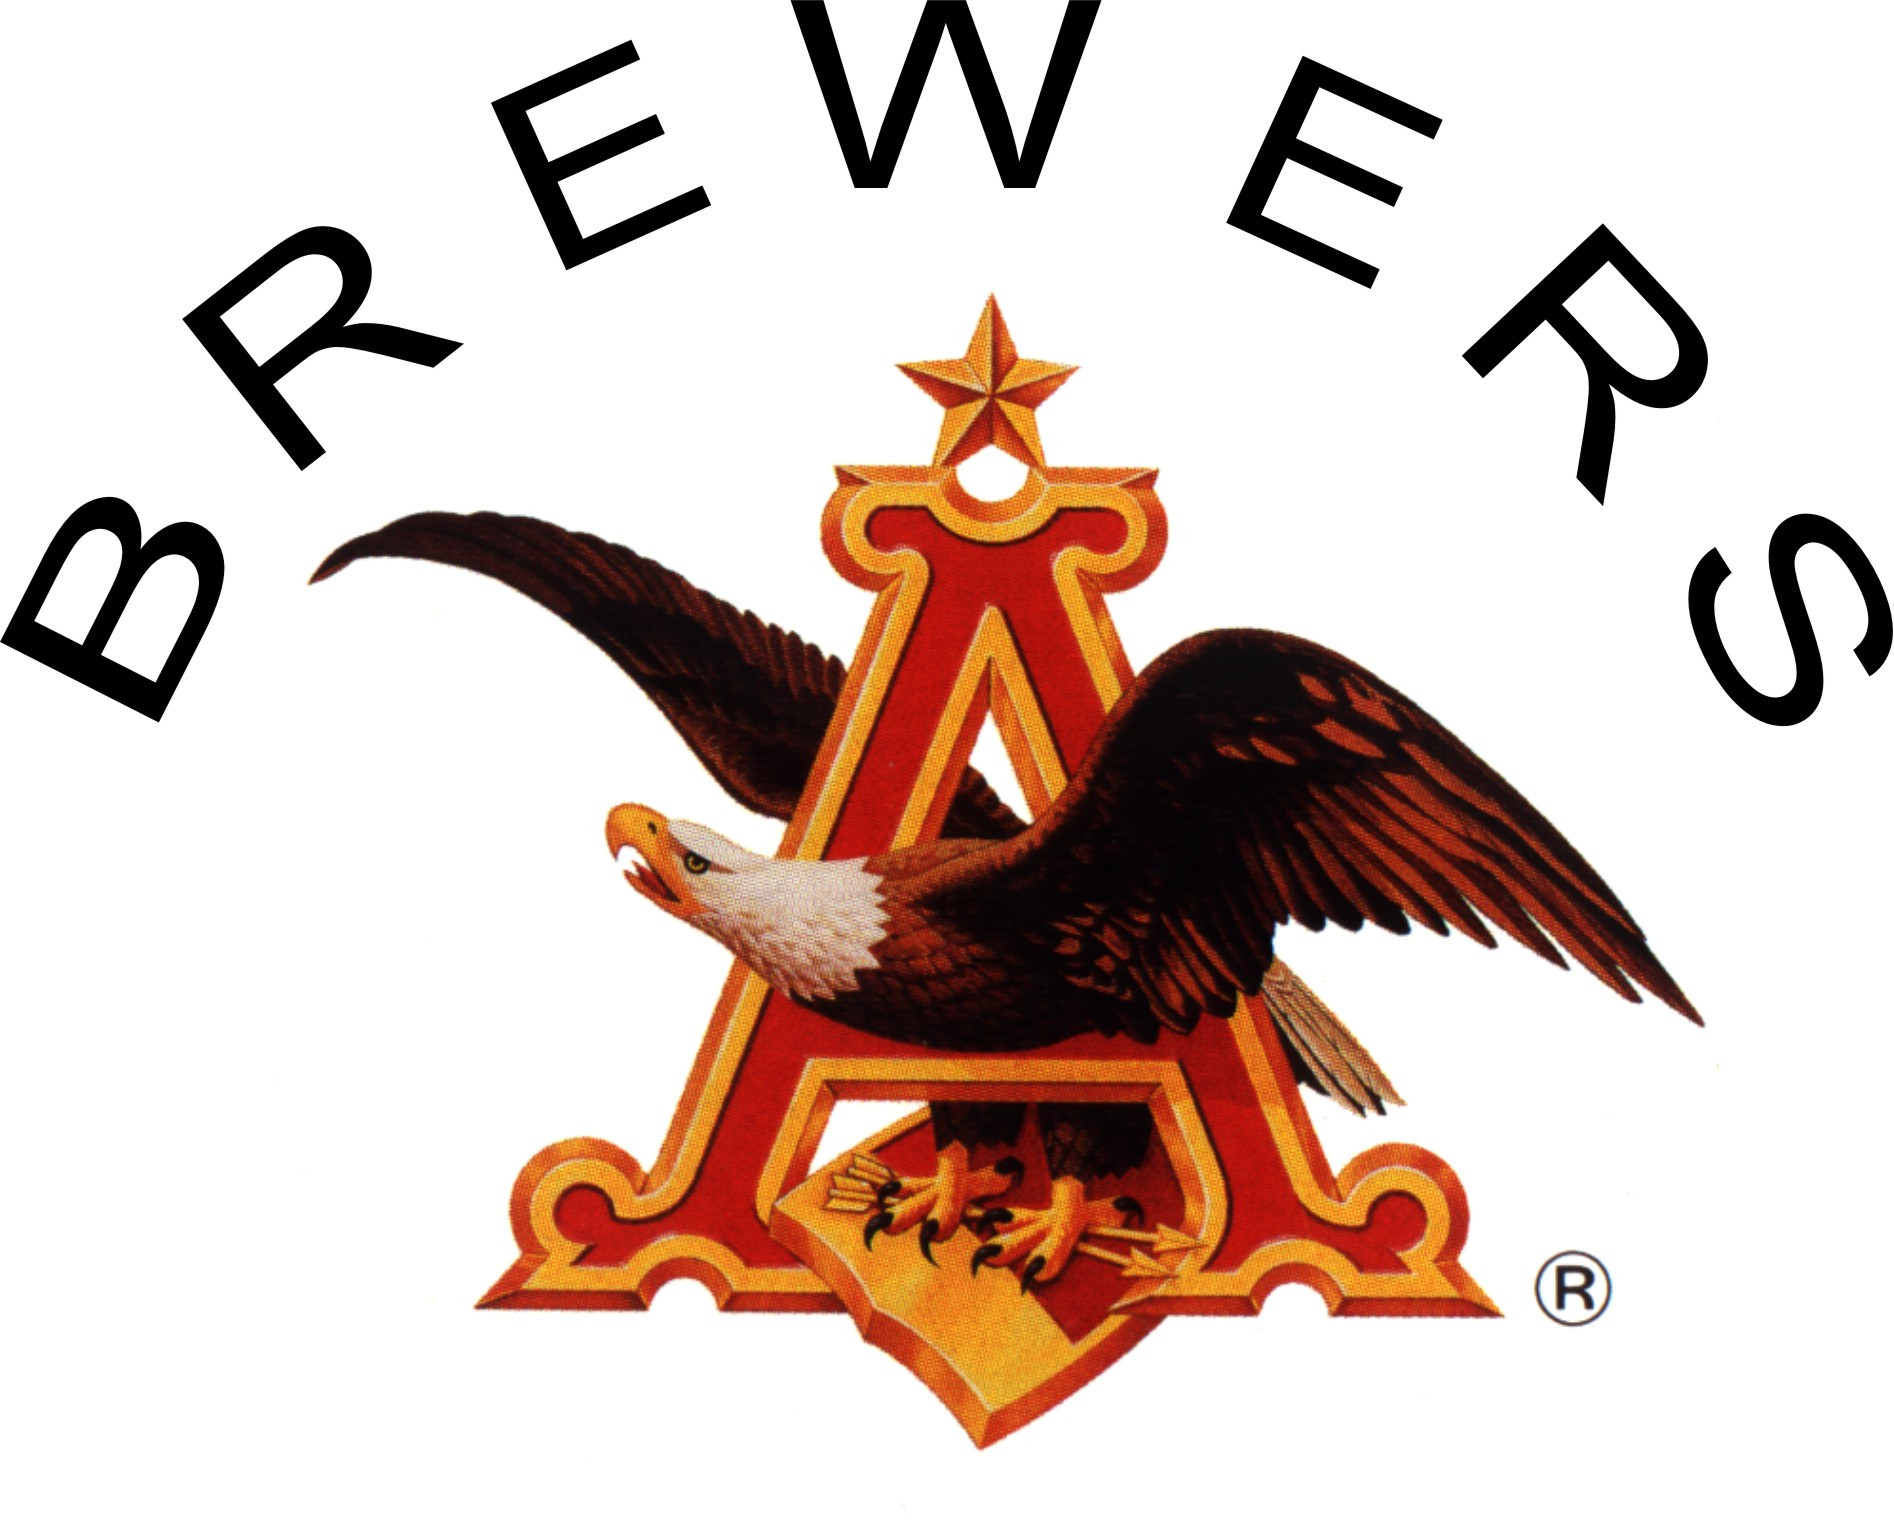 Brewer's Distributing